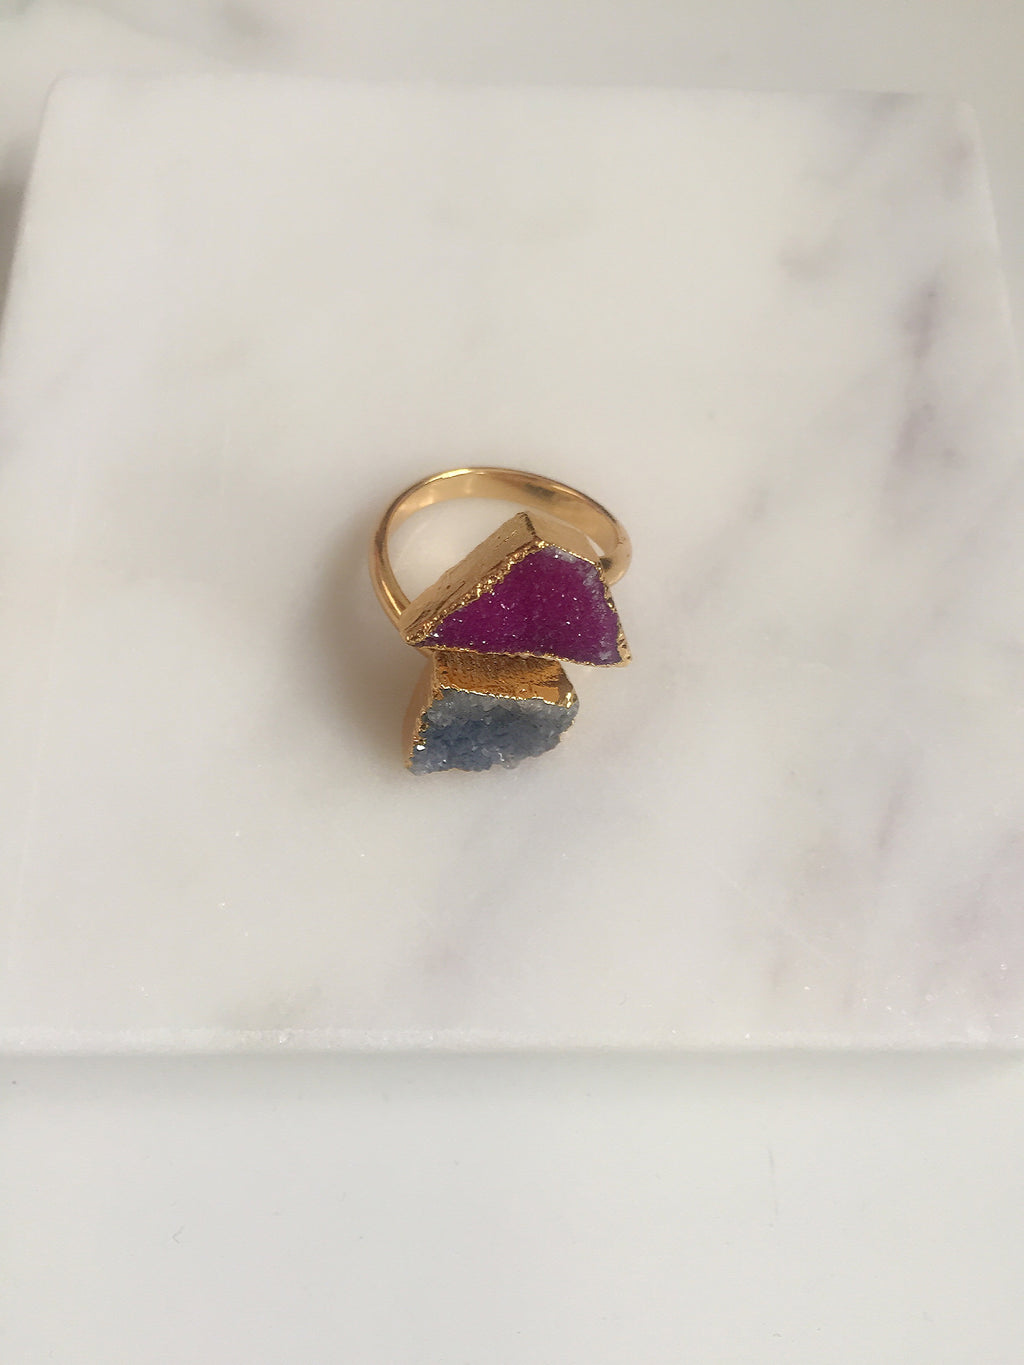 Druzy Agate + Double Ring